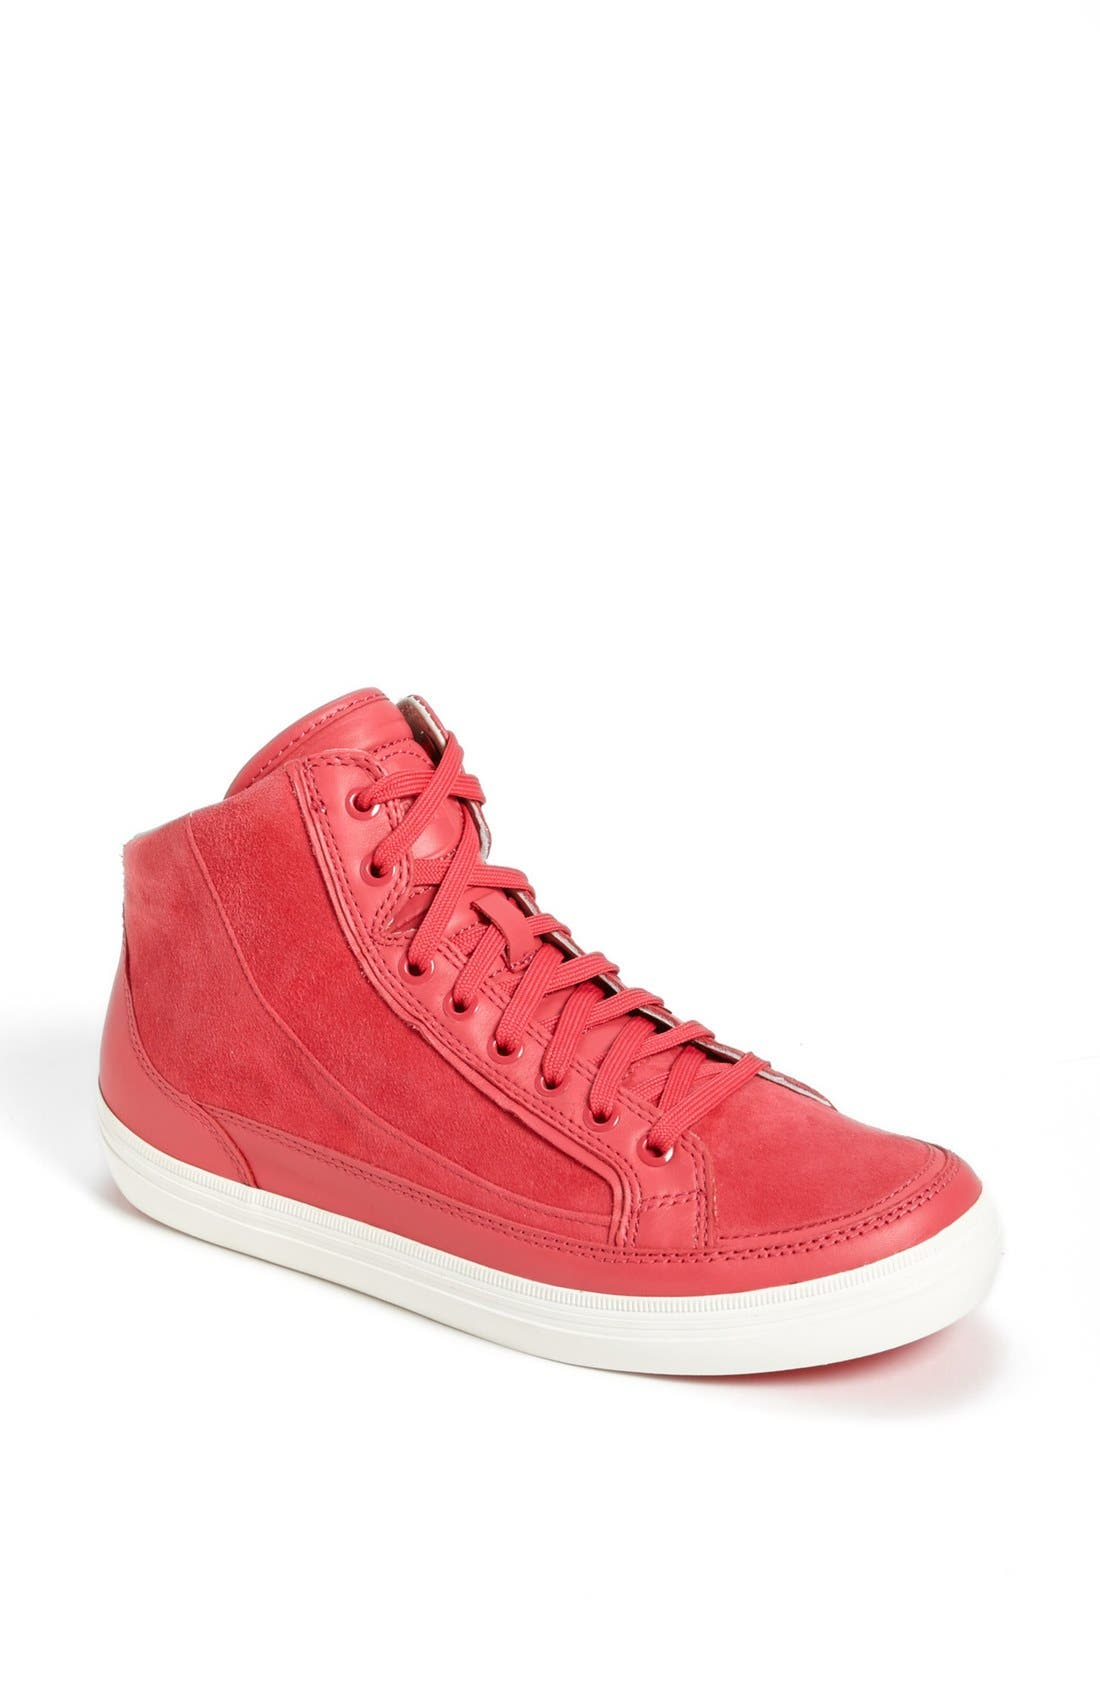 Main Image - FitFlop 'SuperSneaker™' High Top Sneaker